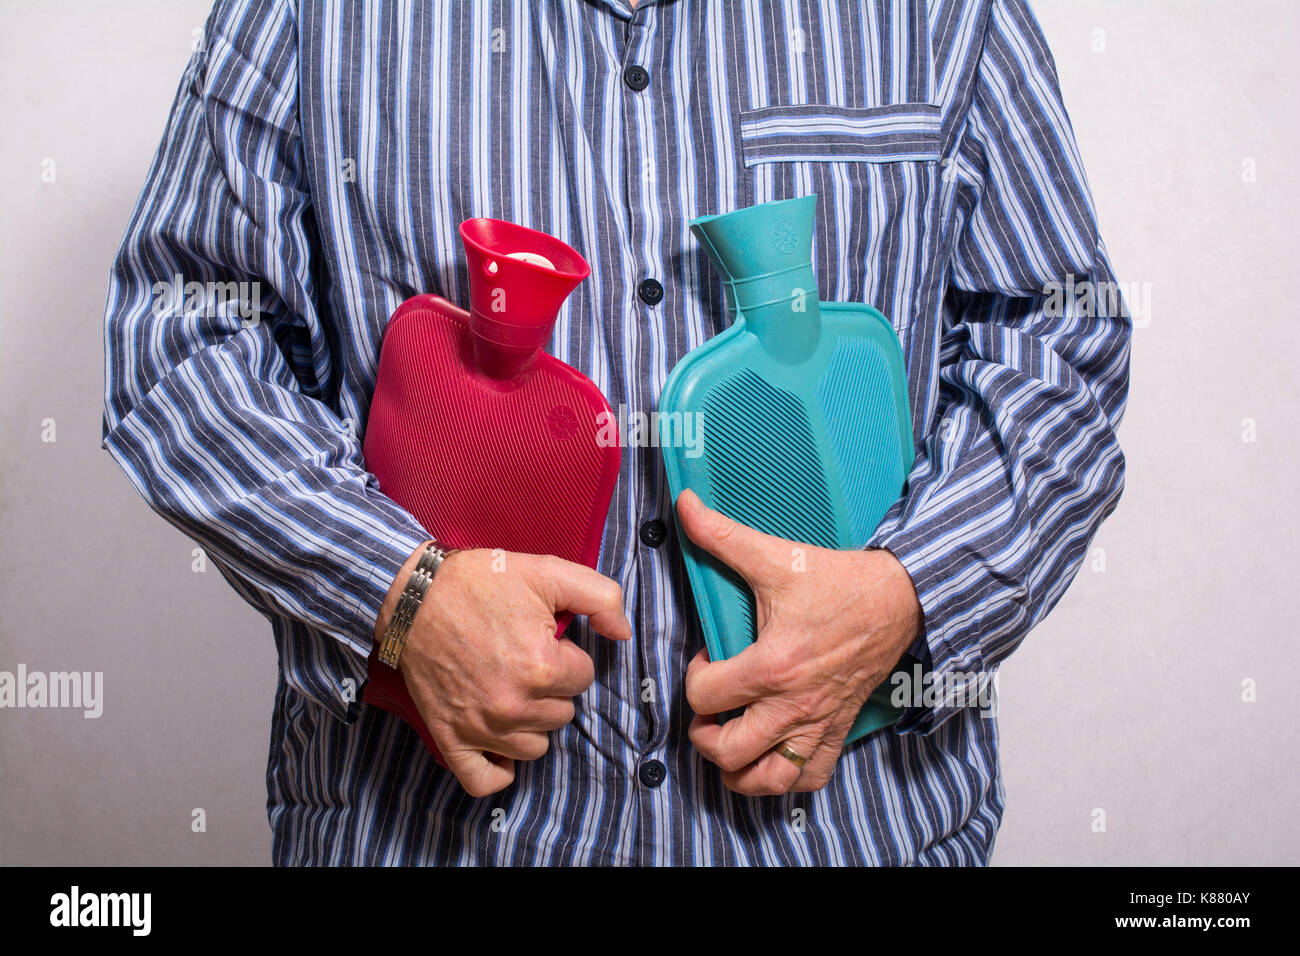 Man in striped pyjamas holding two hot water bottles - Stock Image